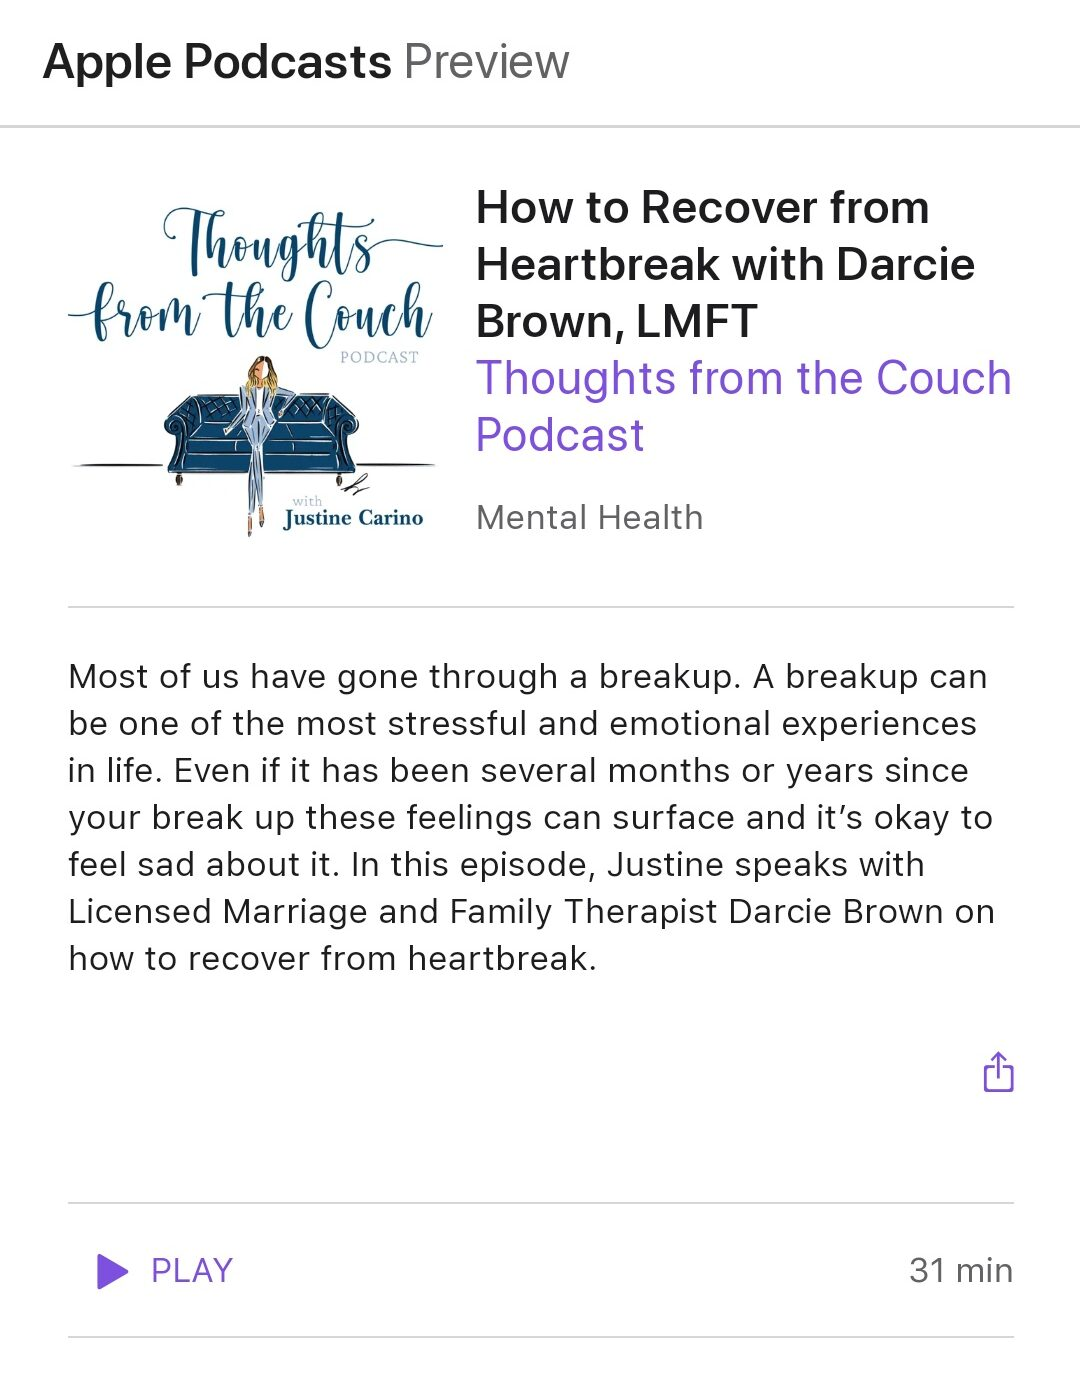 Thoughts-from-the-couch-Podcast-How-Recover-from-Heartbreak_Darcie-Brown-LMFT-on-Apple-Podcasts